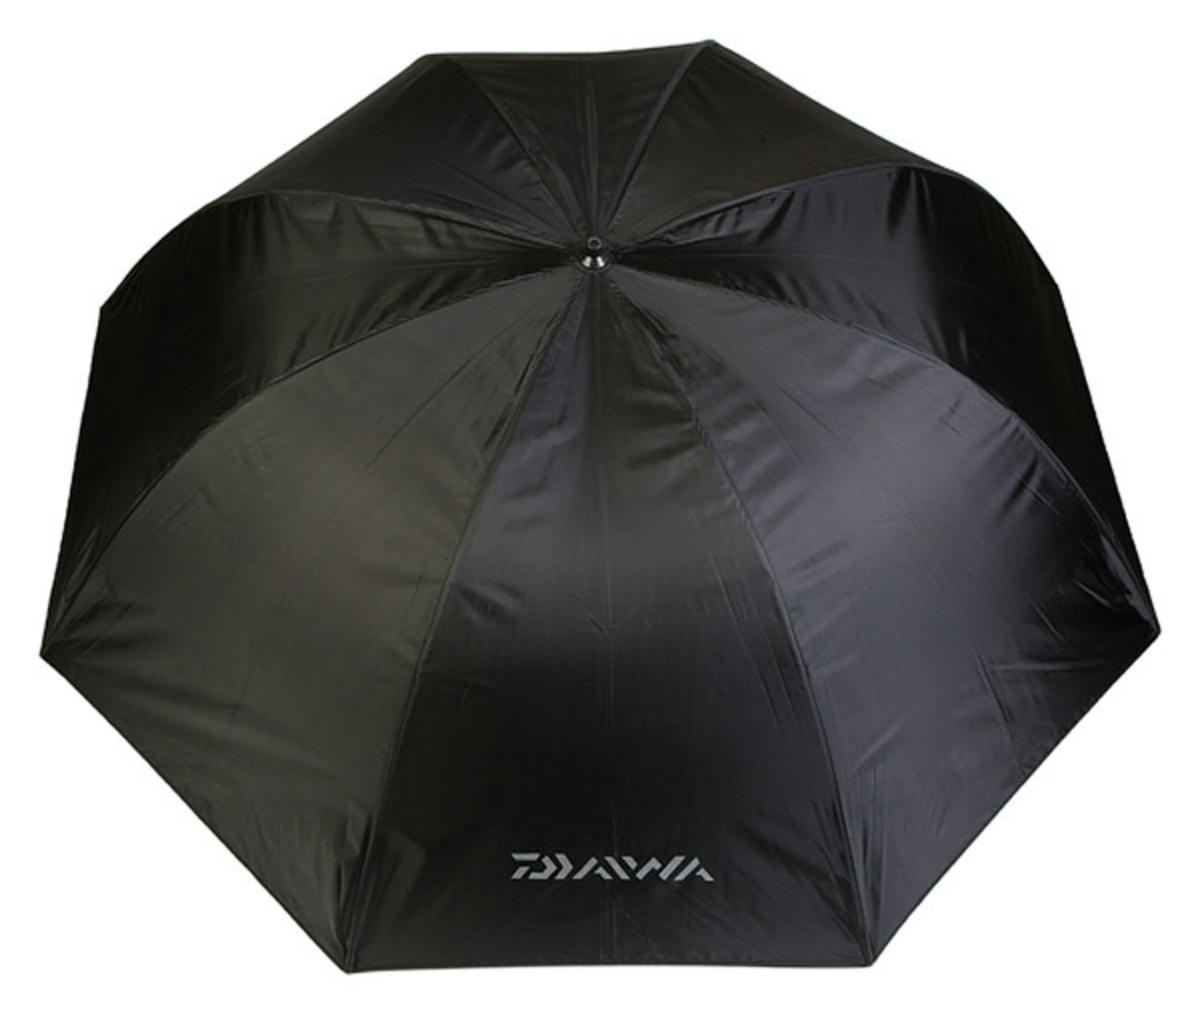 "New Daiwa Vector 125cm / 50"" Fishing Brolly / Umbrella Black - DVB125-B"